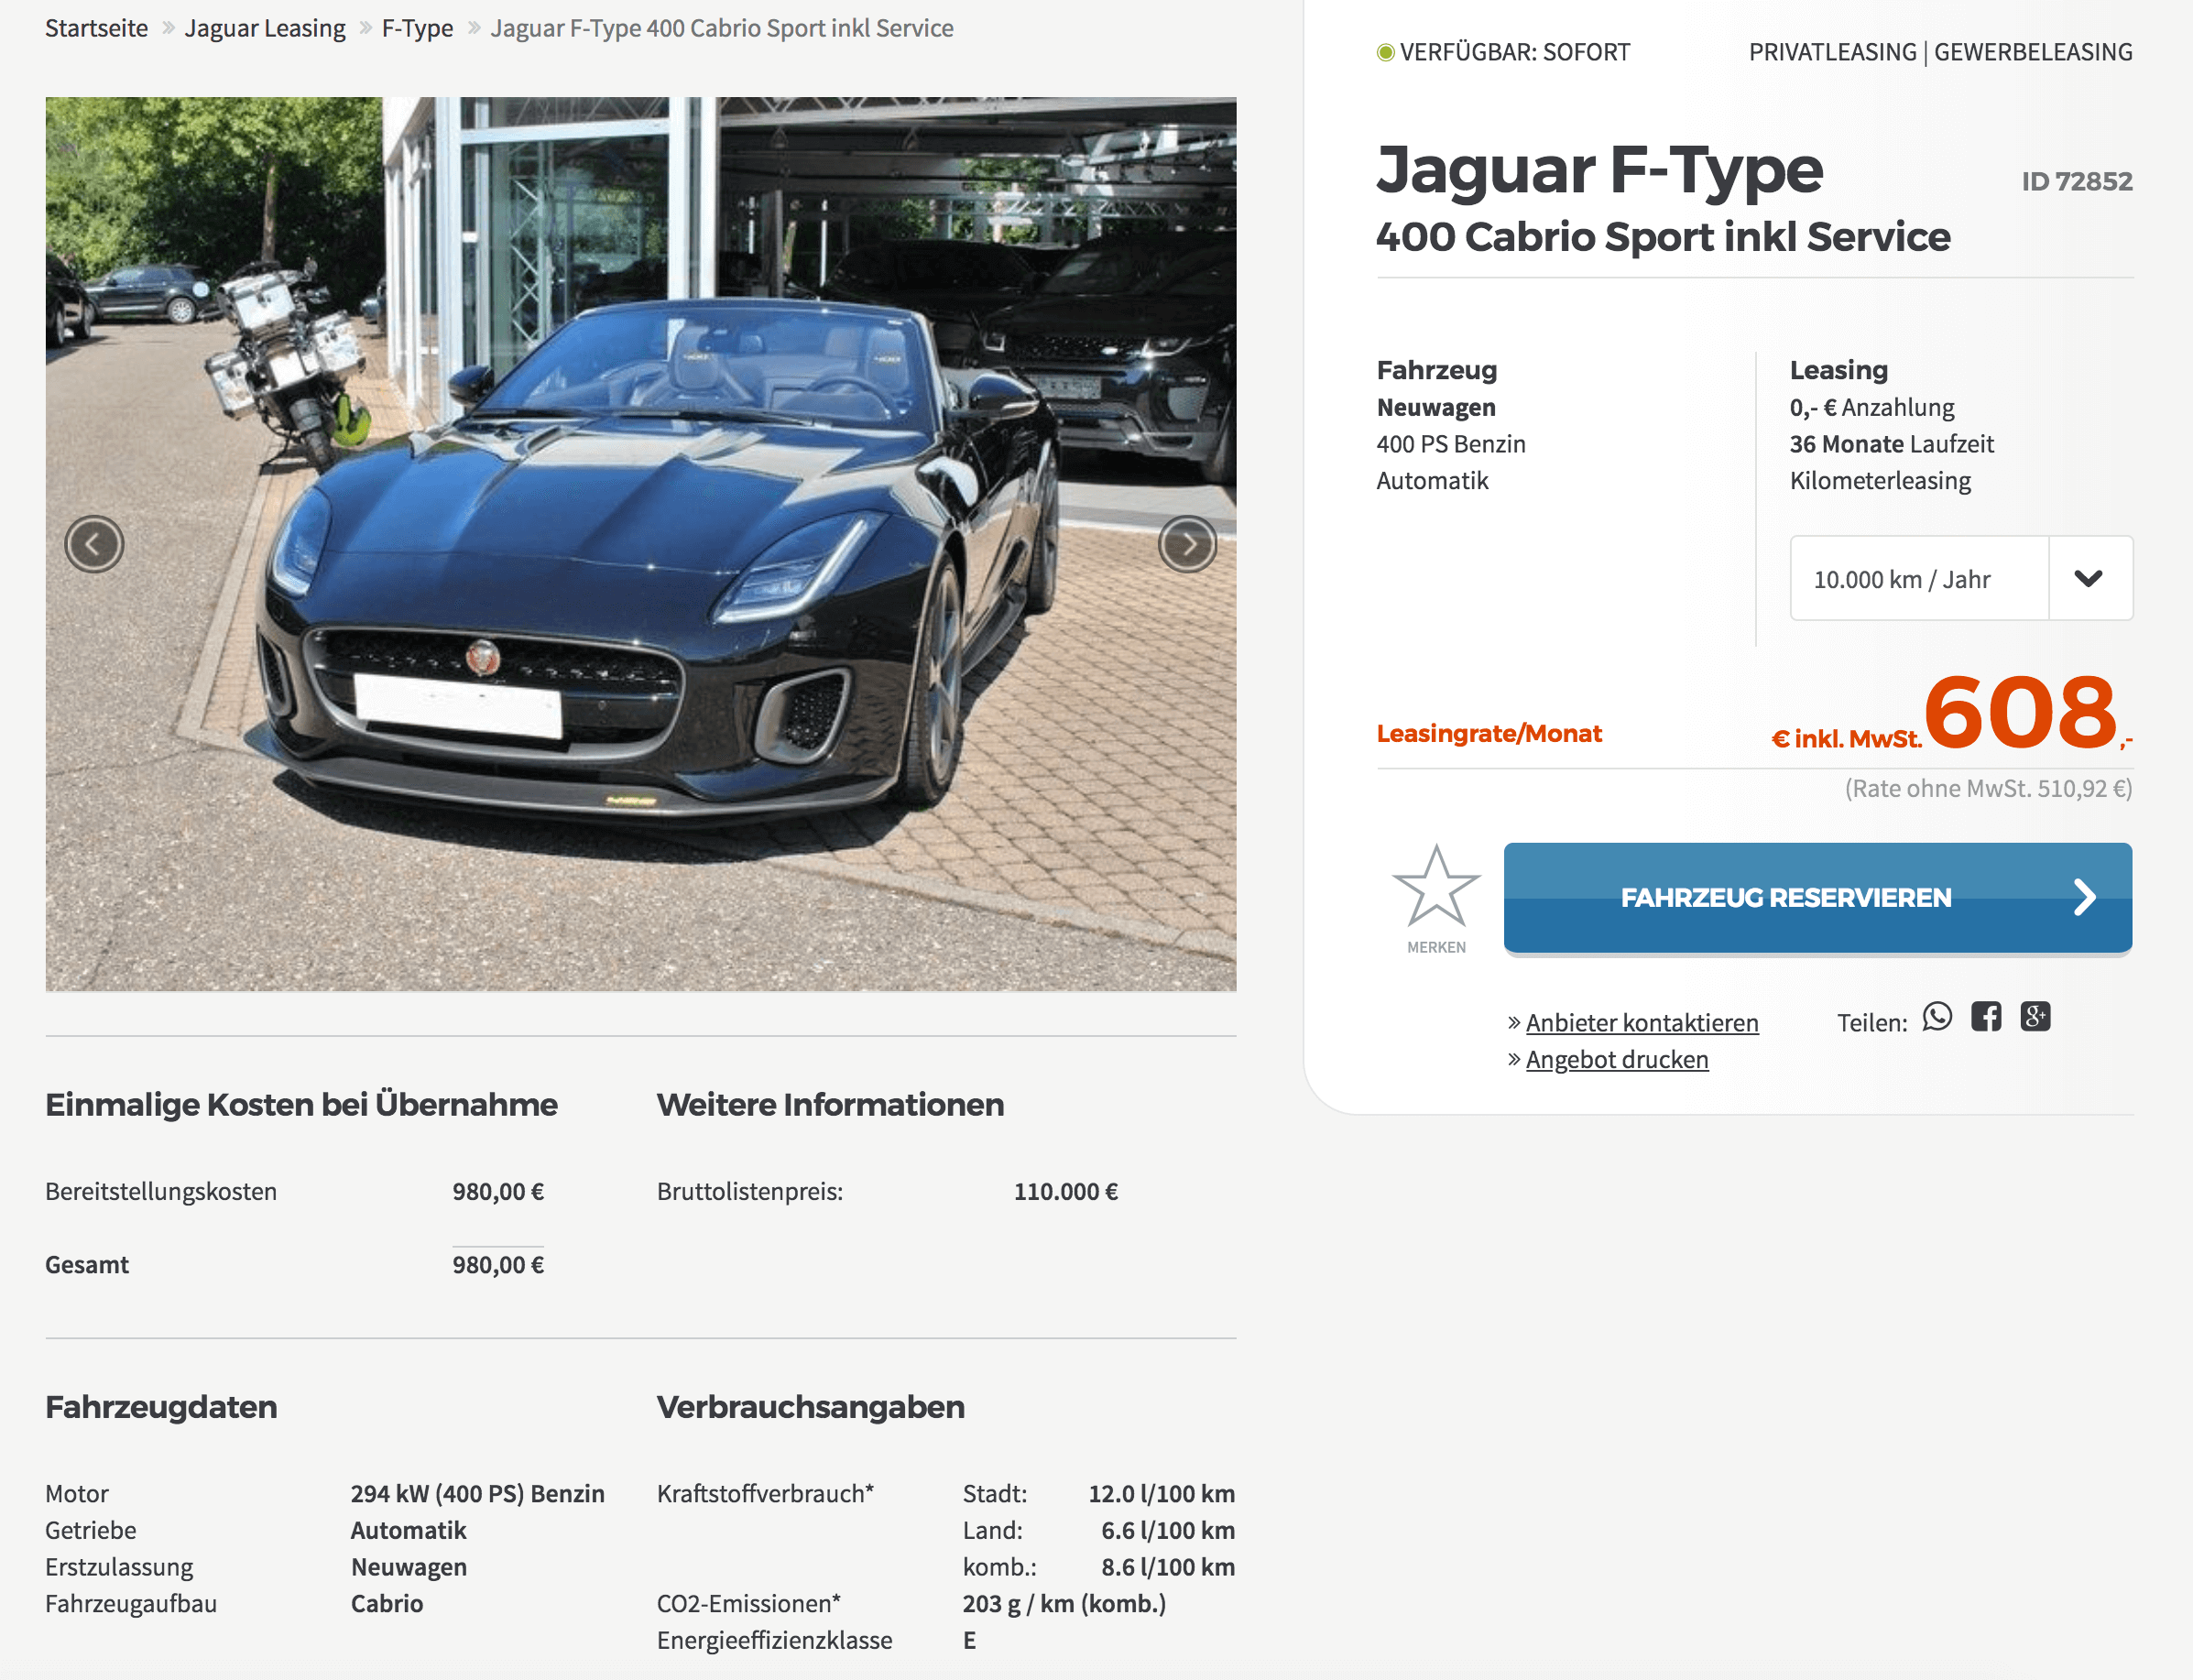 jaguar f type cabrio leasing f r 608 euro im monat brutto inkl service. Black Bedroom Furniture Sets. Home Design Ideas